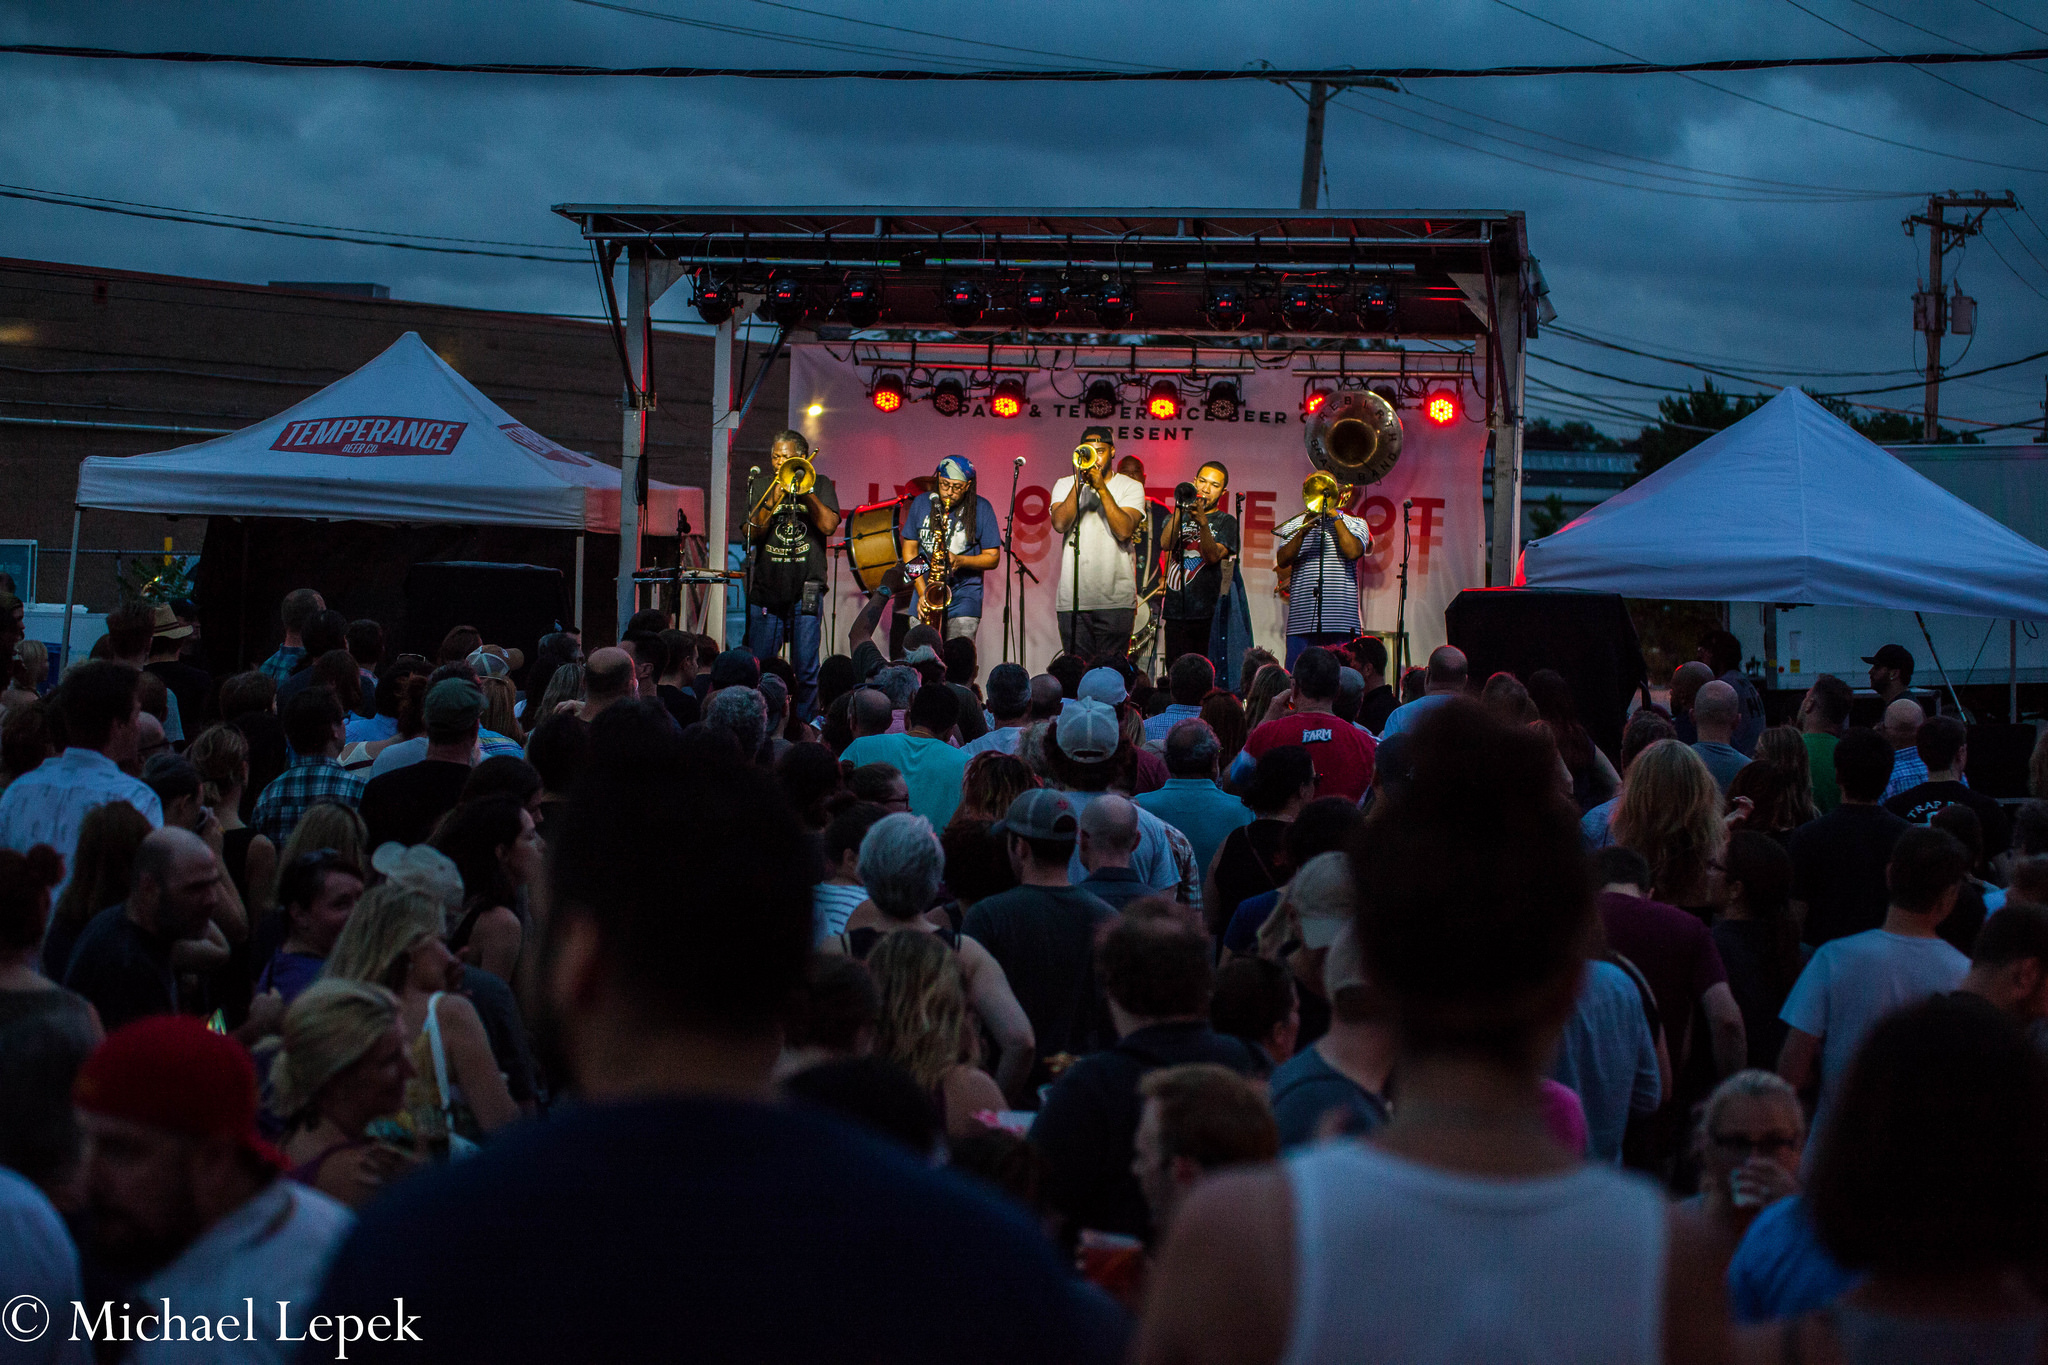 Rebirth Brass Band Highlights 'Live On The Lot' Debut At Temperance Brewing